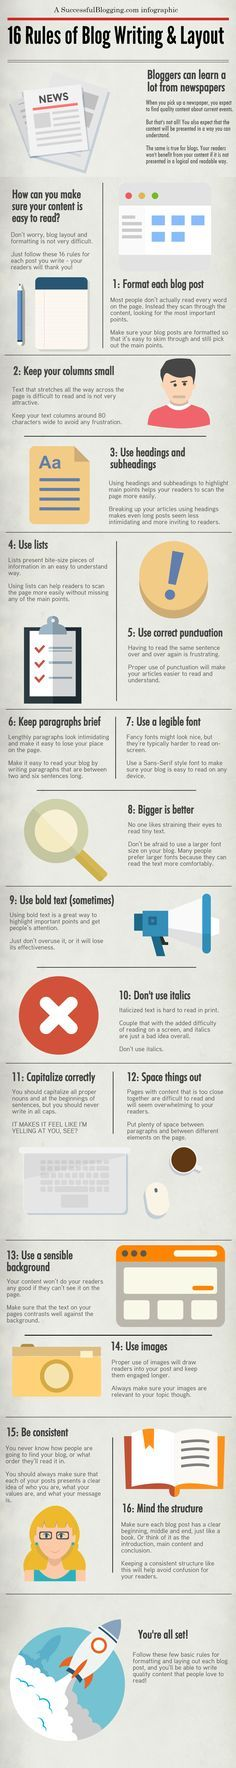 Quality content alone just doesn't cut it anymore on blogs. Not only do people want to read high quality content, they want it presented logically. Check out this infographic to learn the 16 rules!